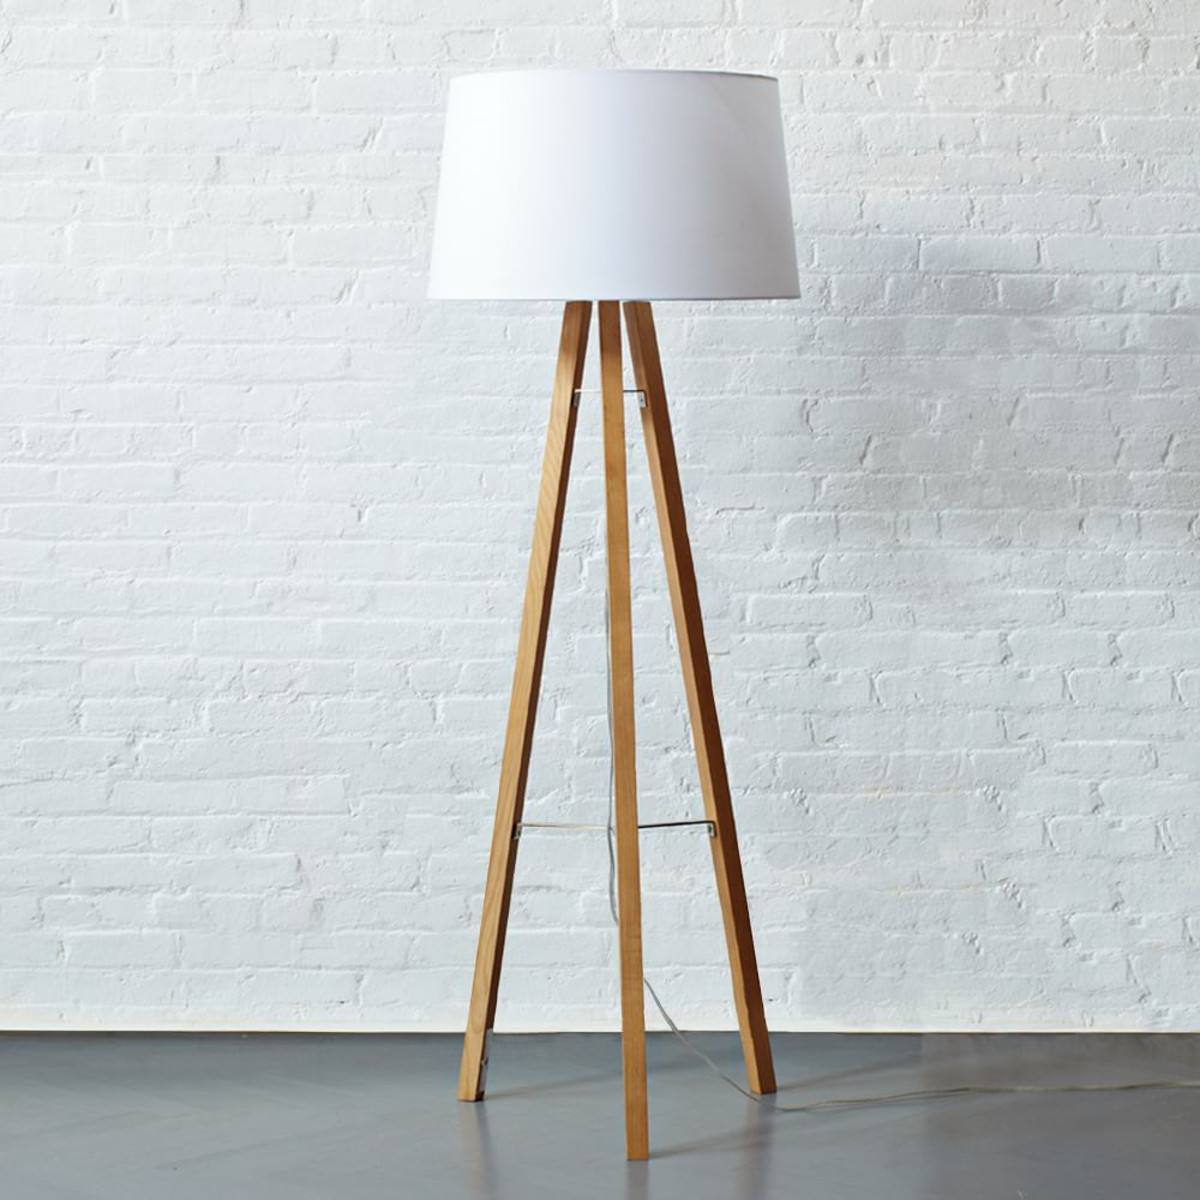 Spice up your space with west elm floor lamps warisan lighting west elm floor lamp decor ideas geotapseo Image collections